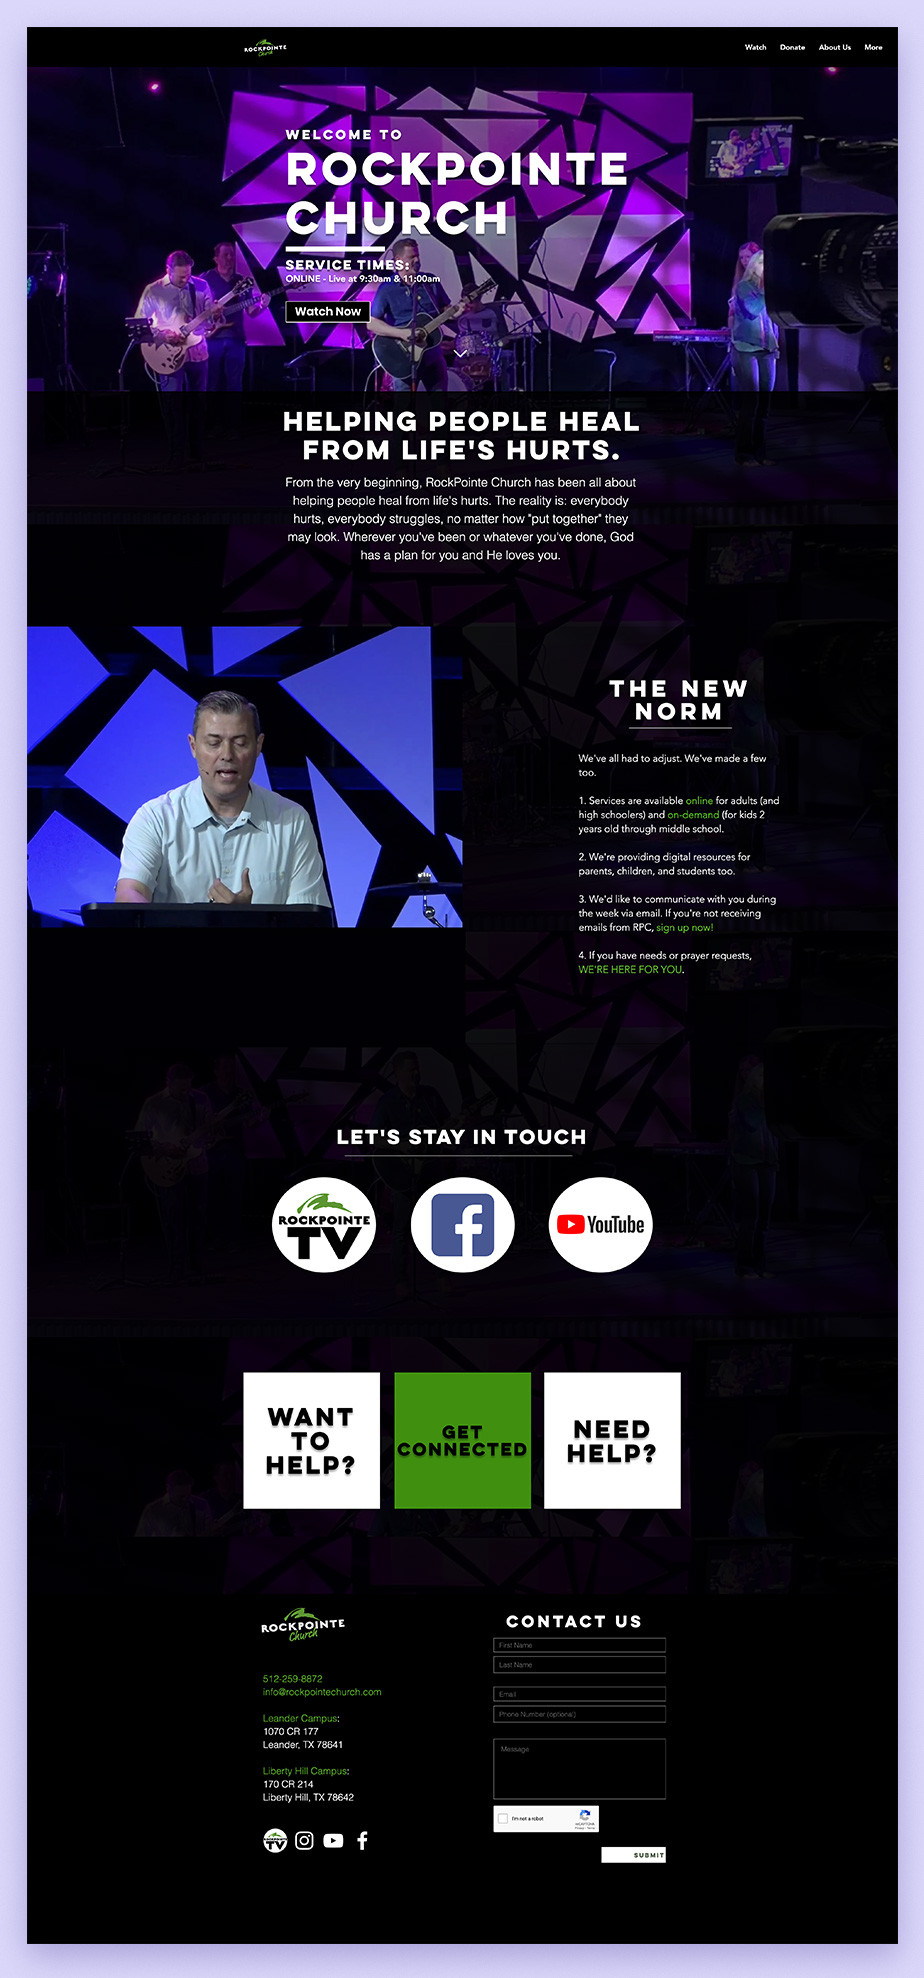 Best church websites example by RockPointe Church